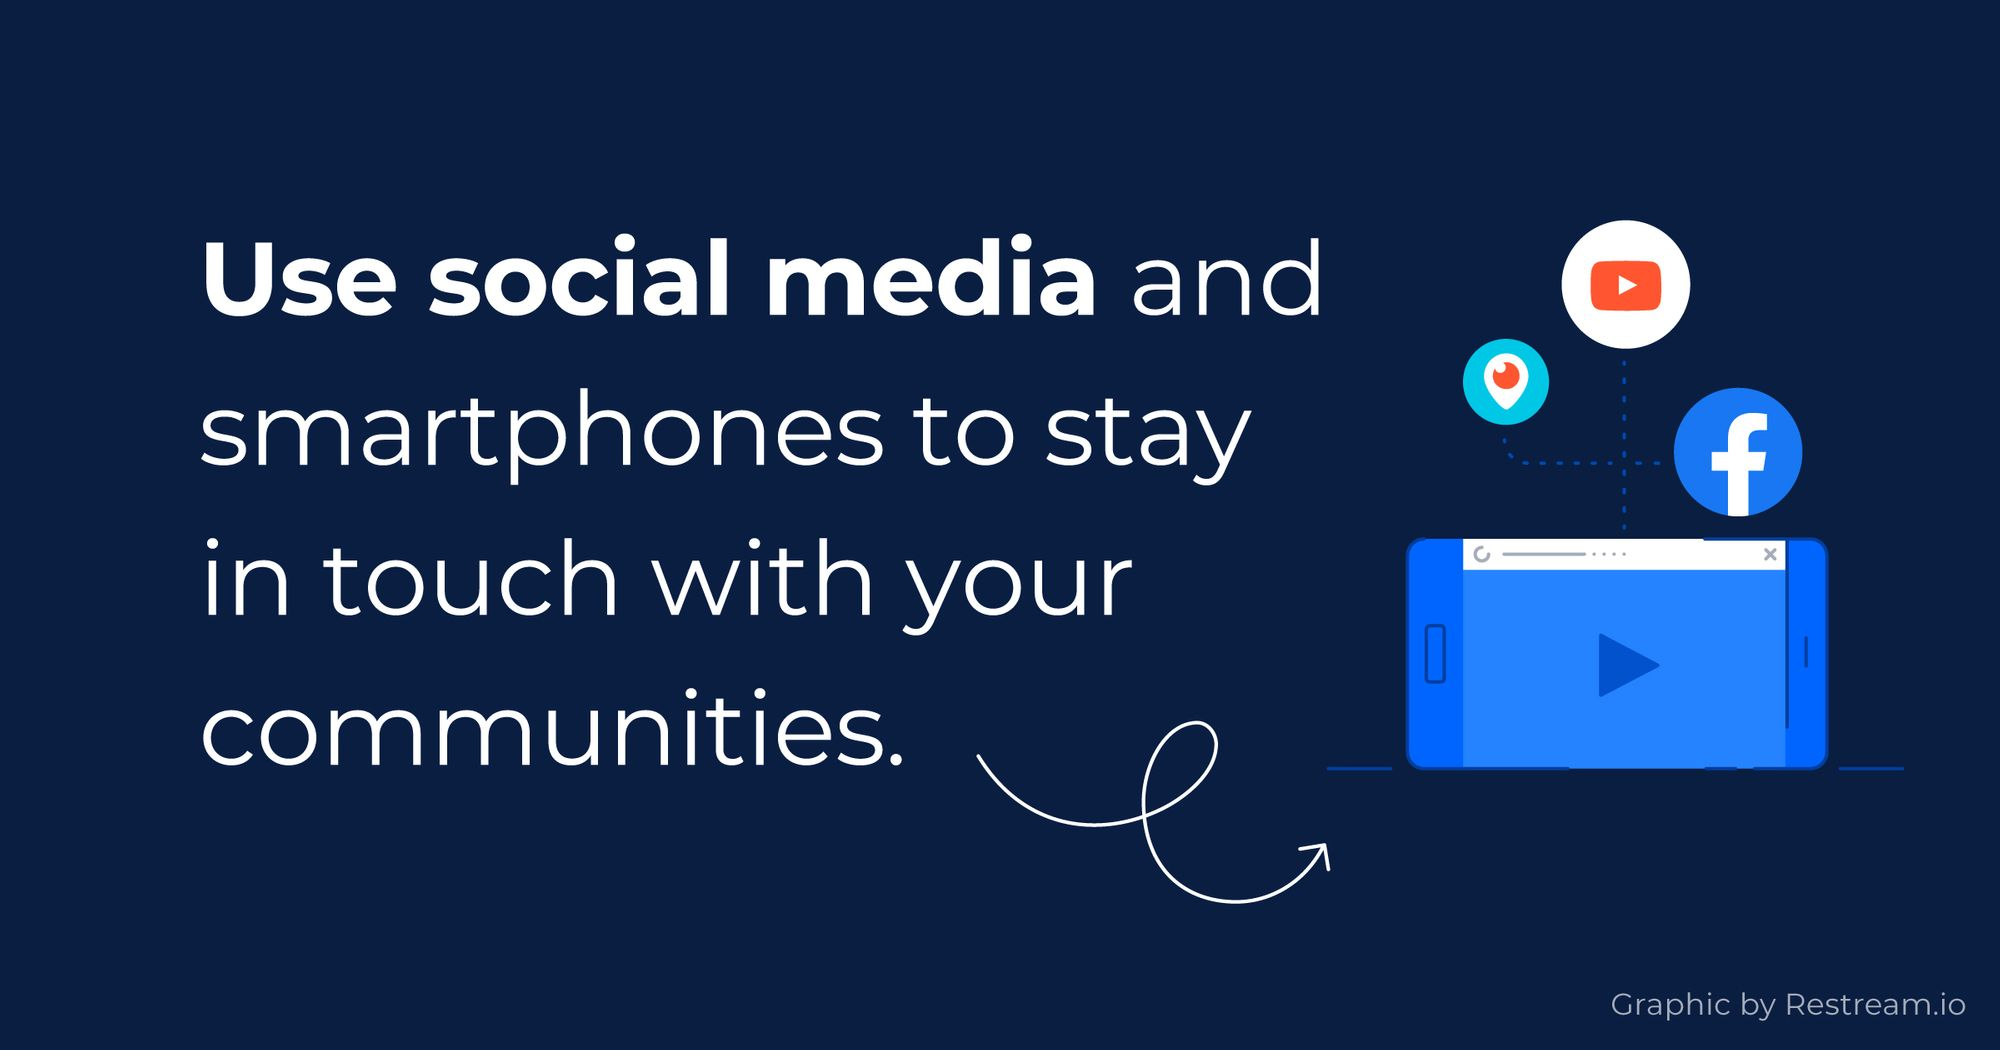 Use social media and smartphones to stay in touch with your communities